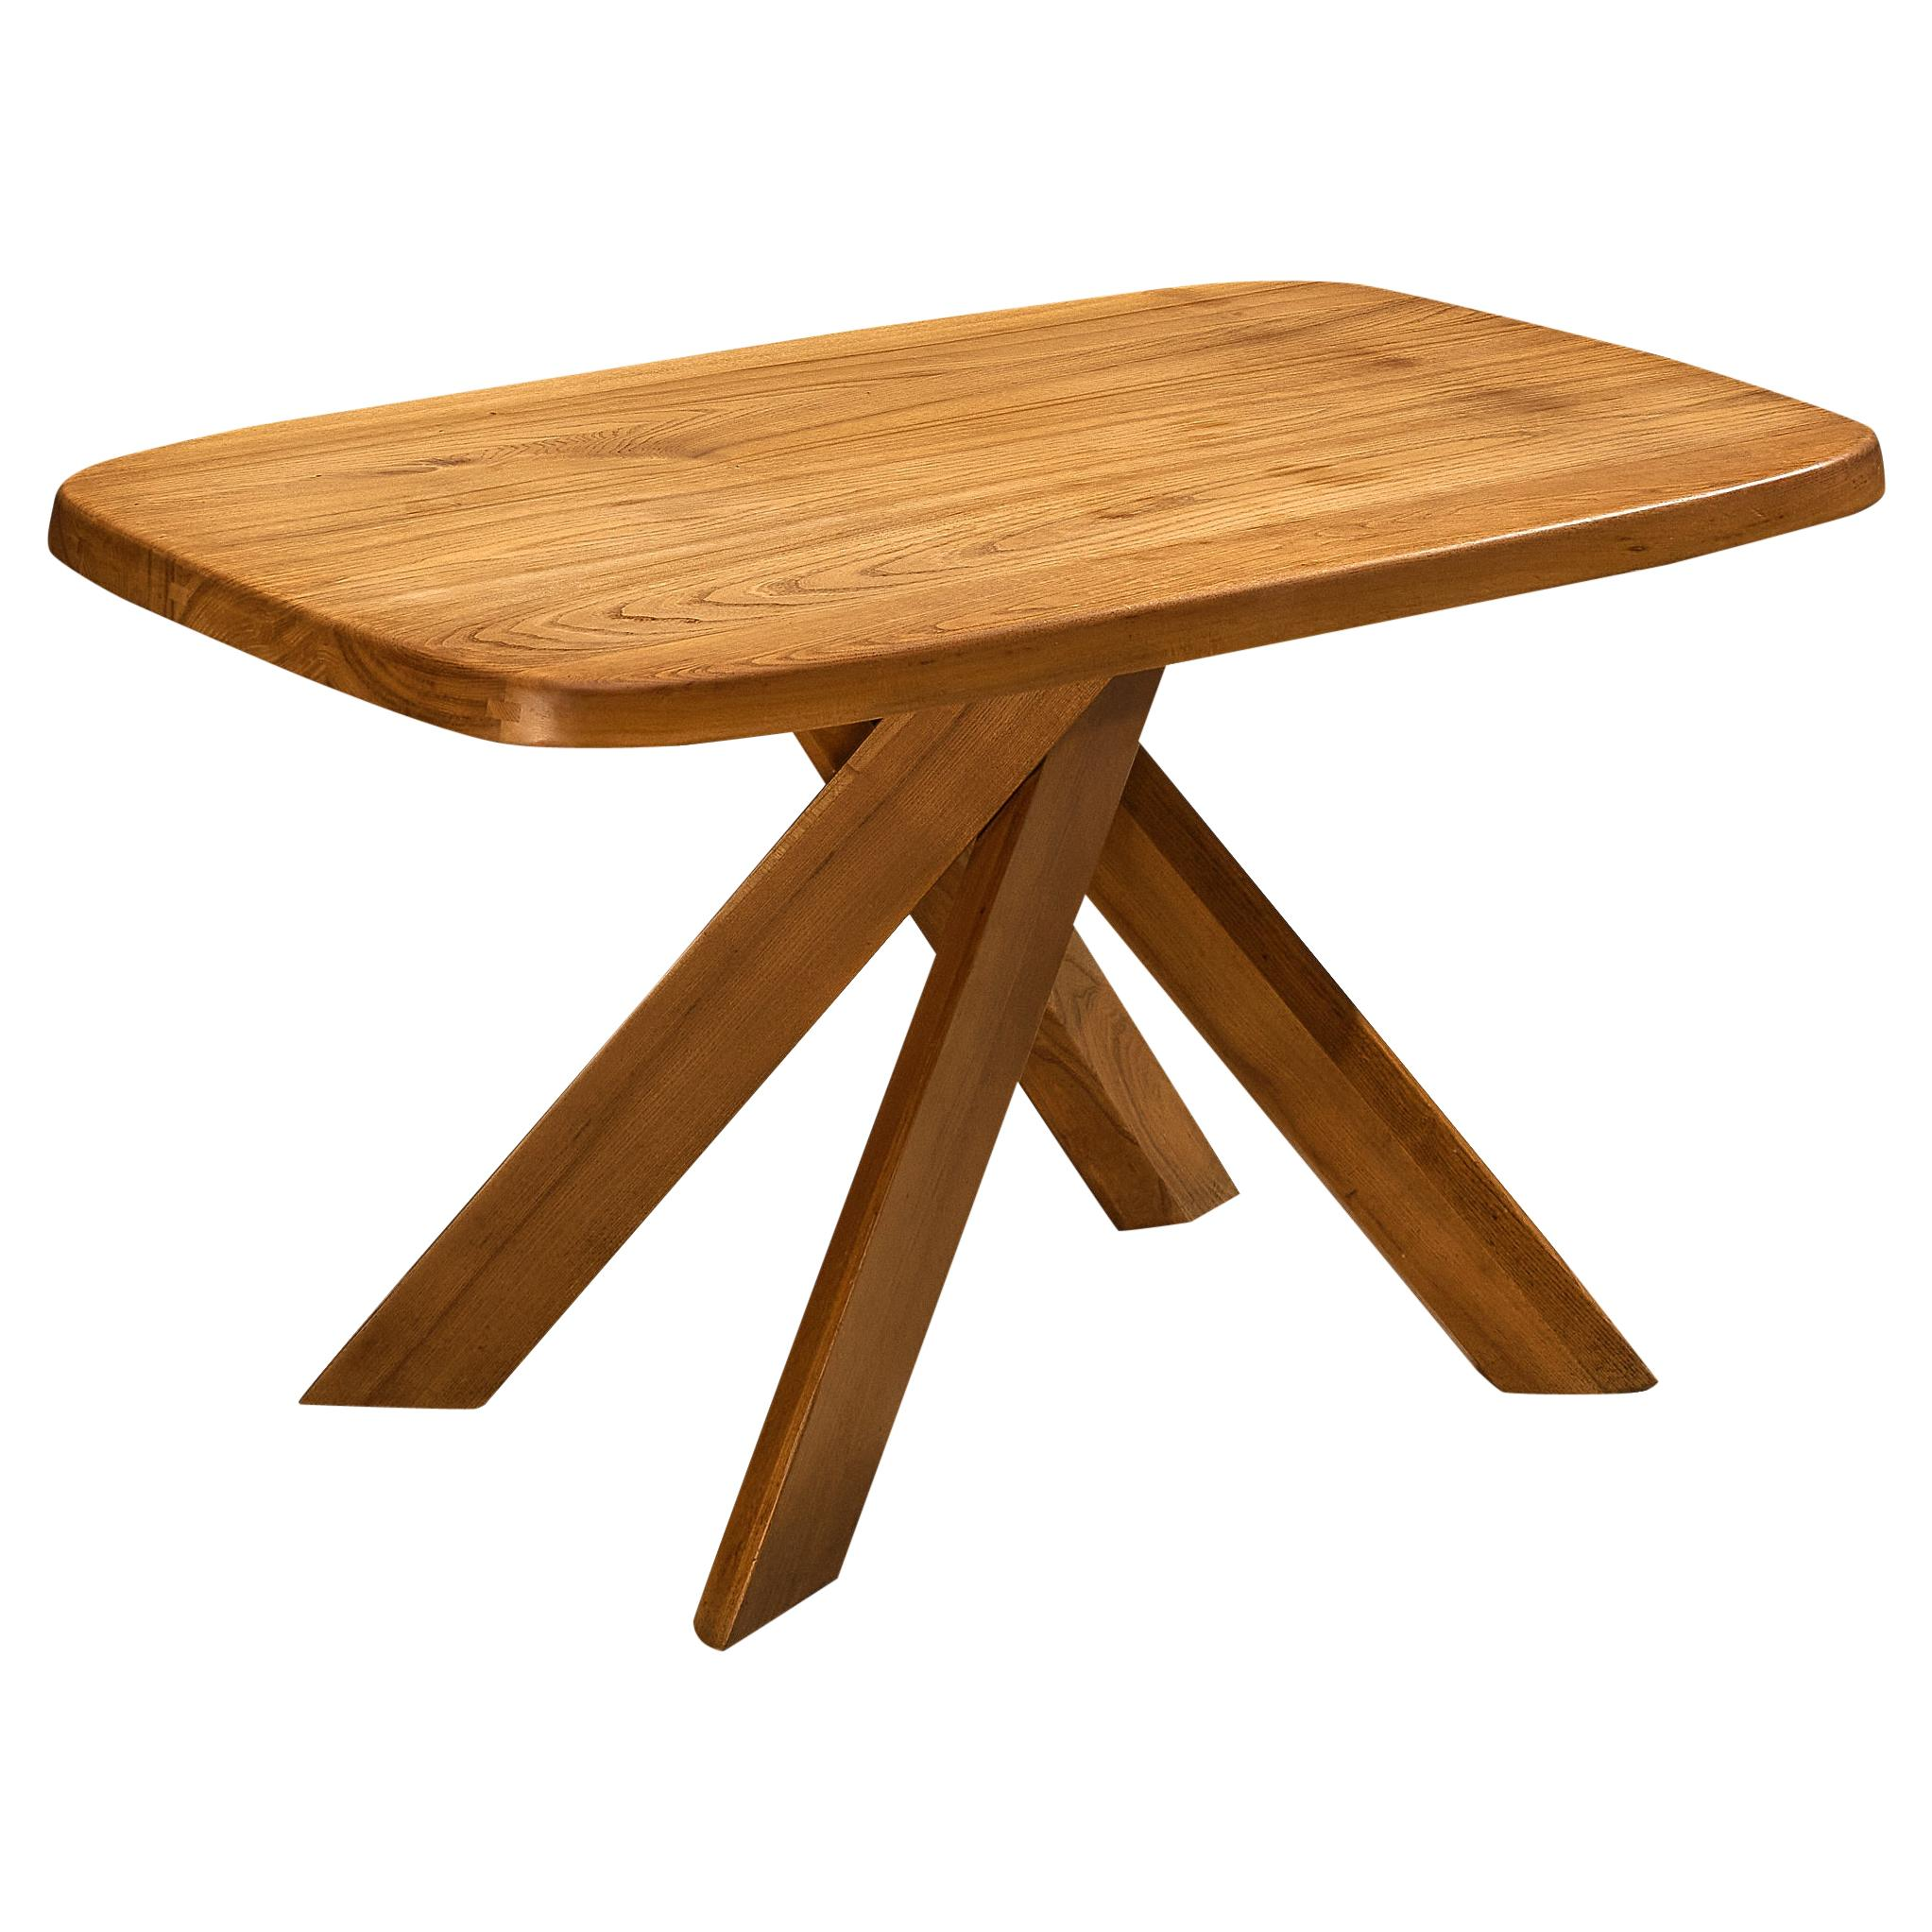 Pierre Chapo Dining Table Model 'Aban T35B' in Solid Elm